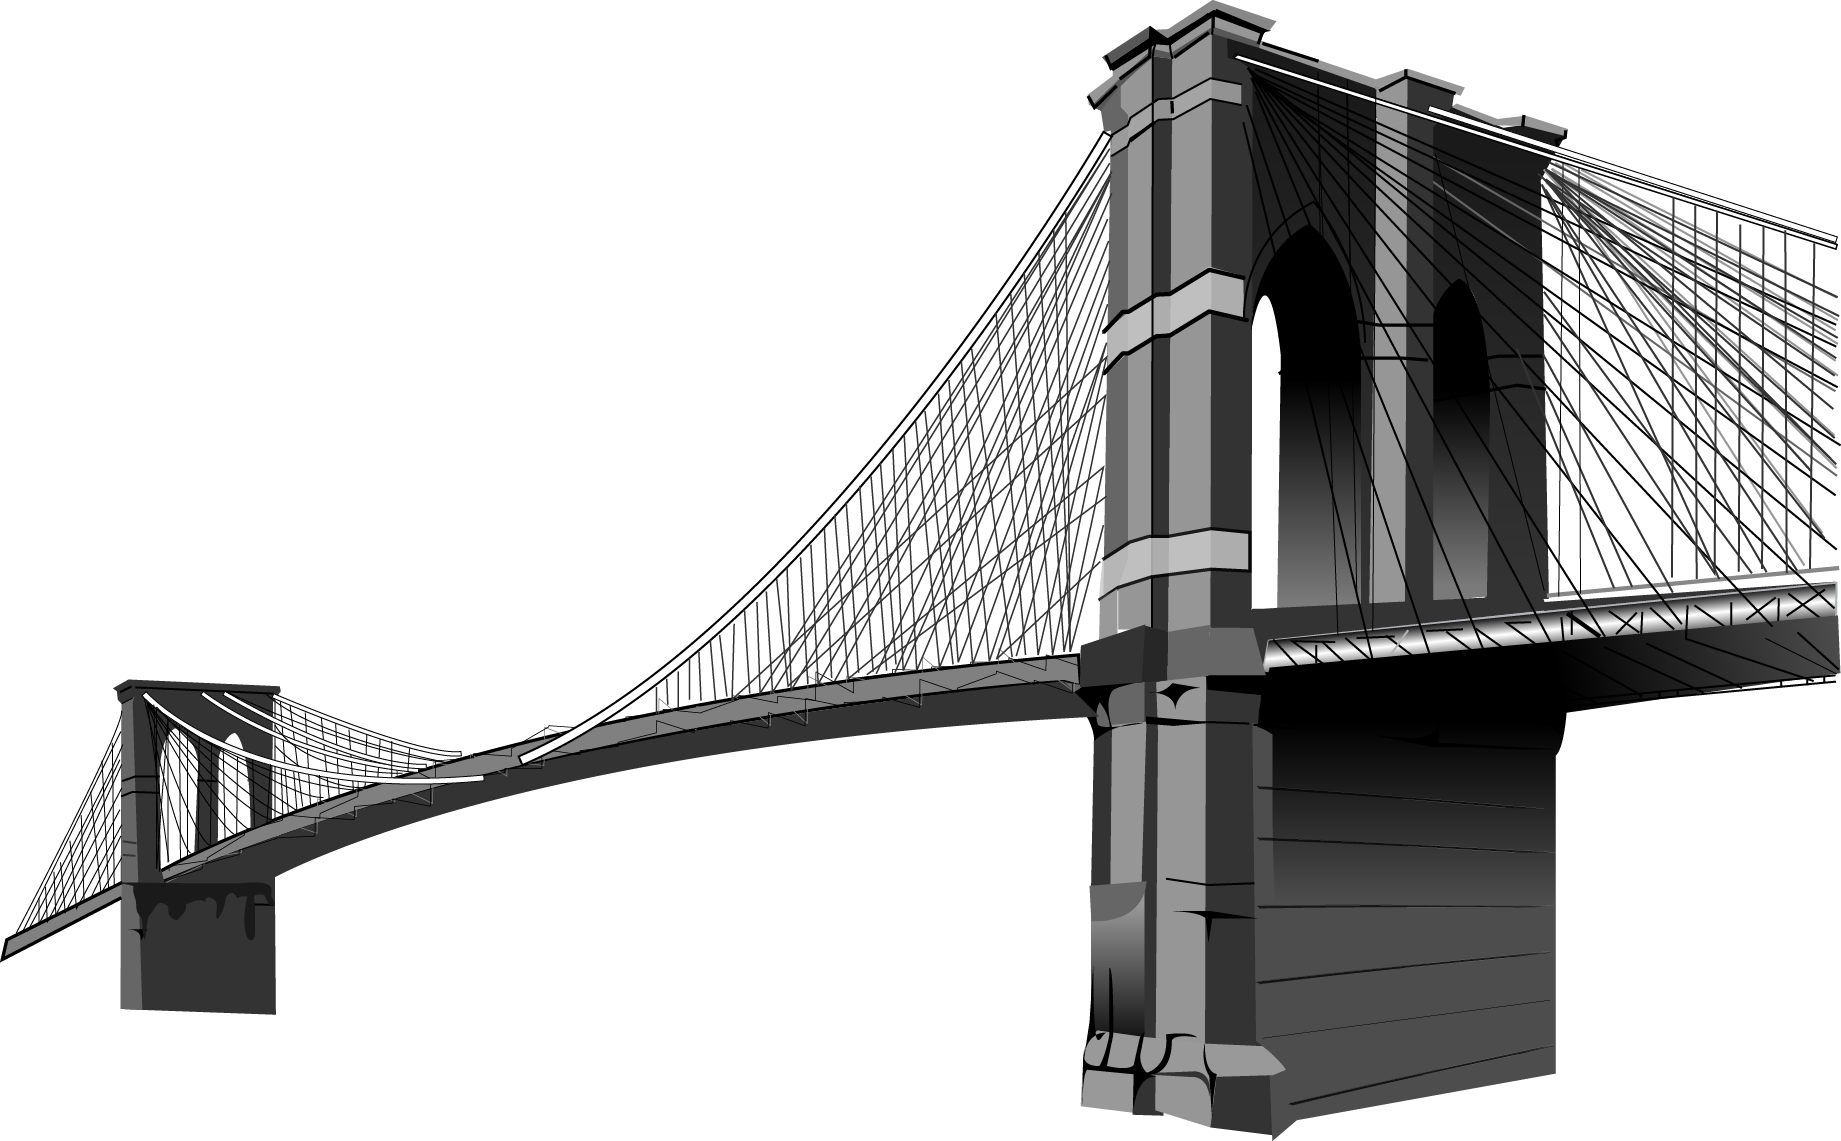 Brooklyn bridge clipart png library library Brooklyn Bridge Clip art - Vector Bridge png download - 1841*1141 ... png library library